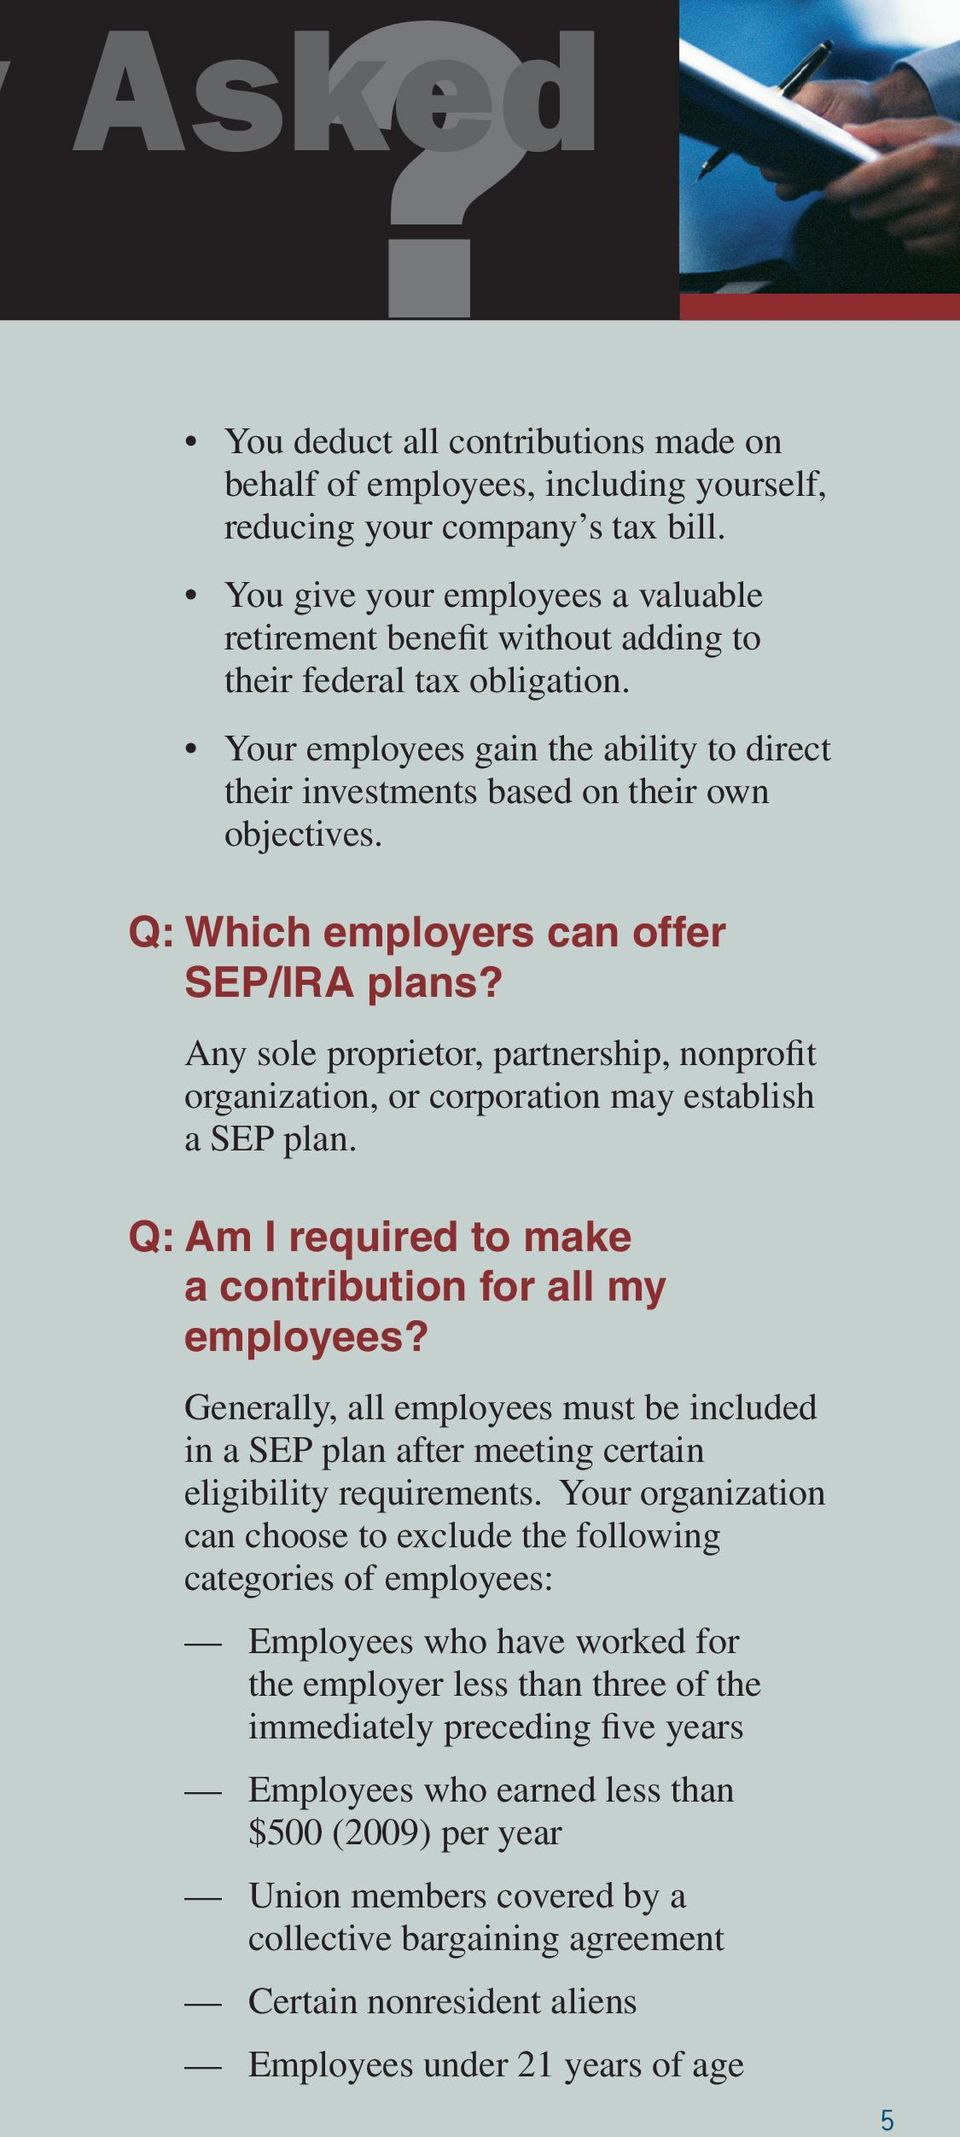 Q: Which employers can offer SEP/IRA plans? Any sole proprietor, partnership, nonprofit organization, or corporation may establish a SEP plan.